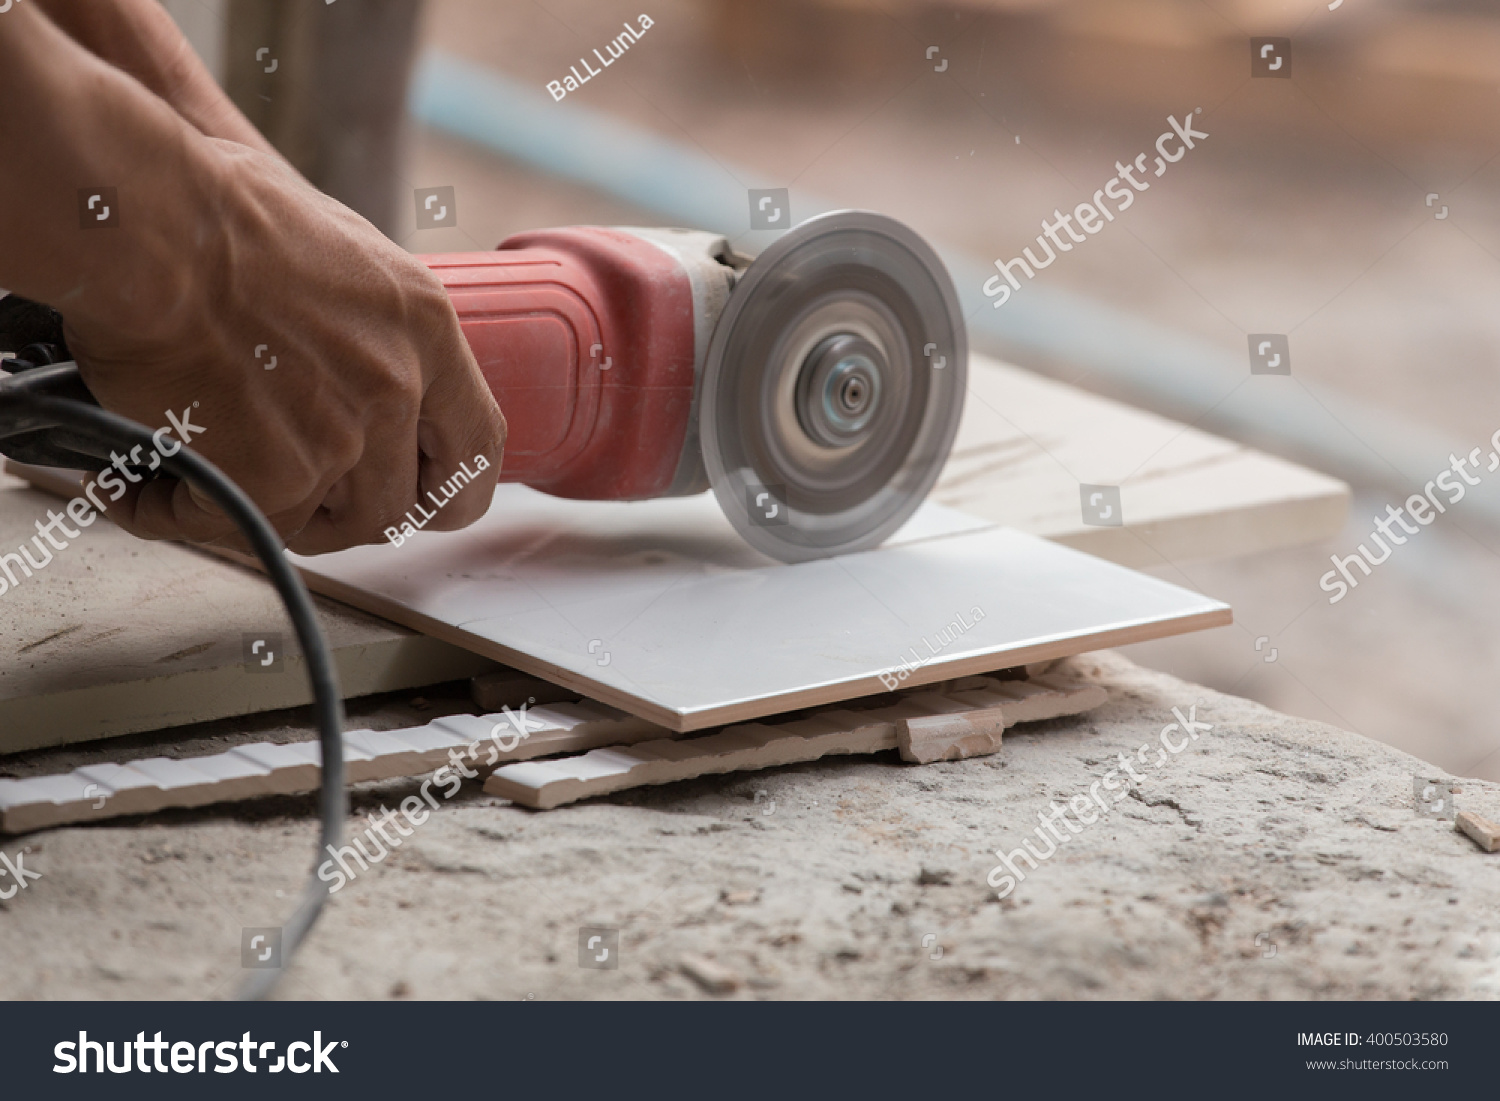 Worker cutting tile using angle grinder stock photo 400503580 worker cutting a tile using an angle grinder at construction site dailygadgetfo Images